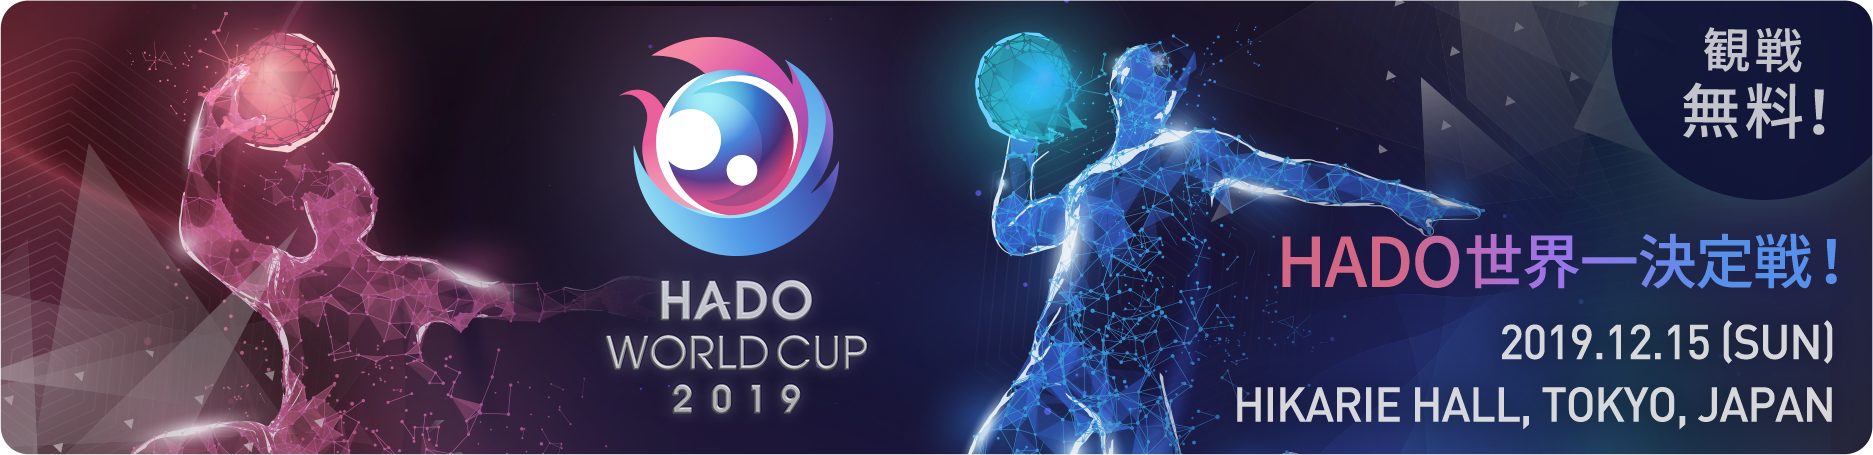 HADO WORLD CUP 2019